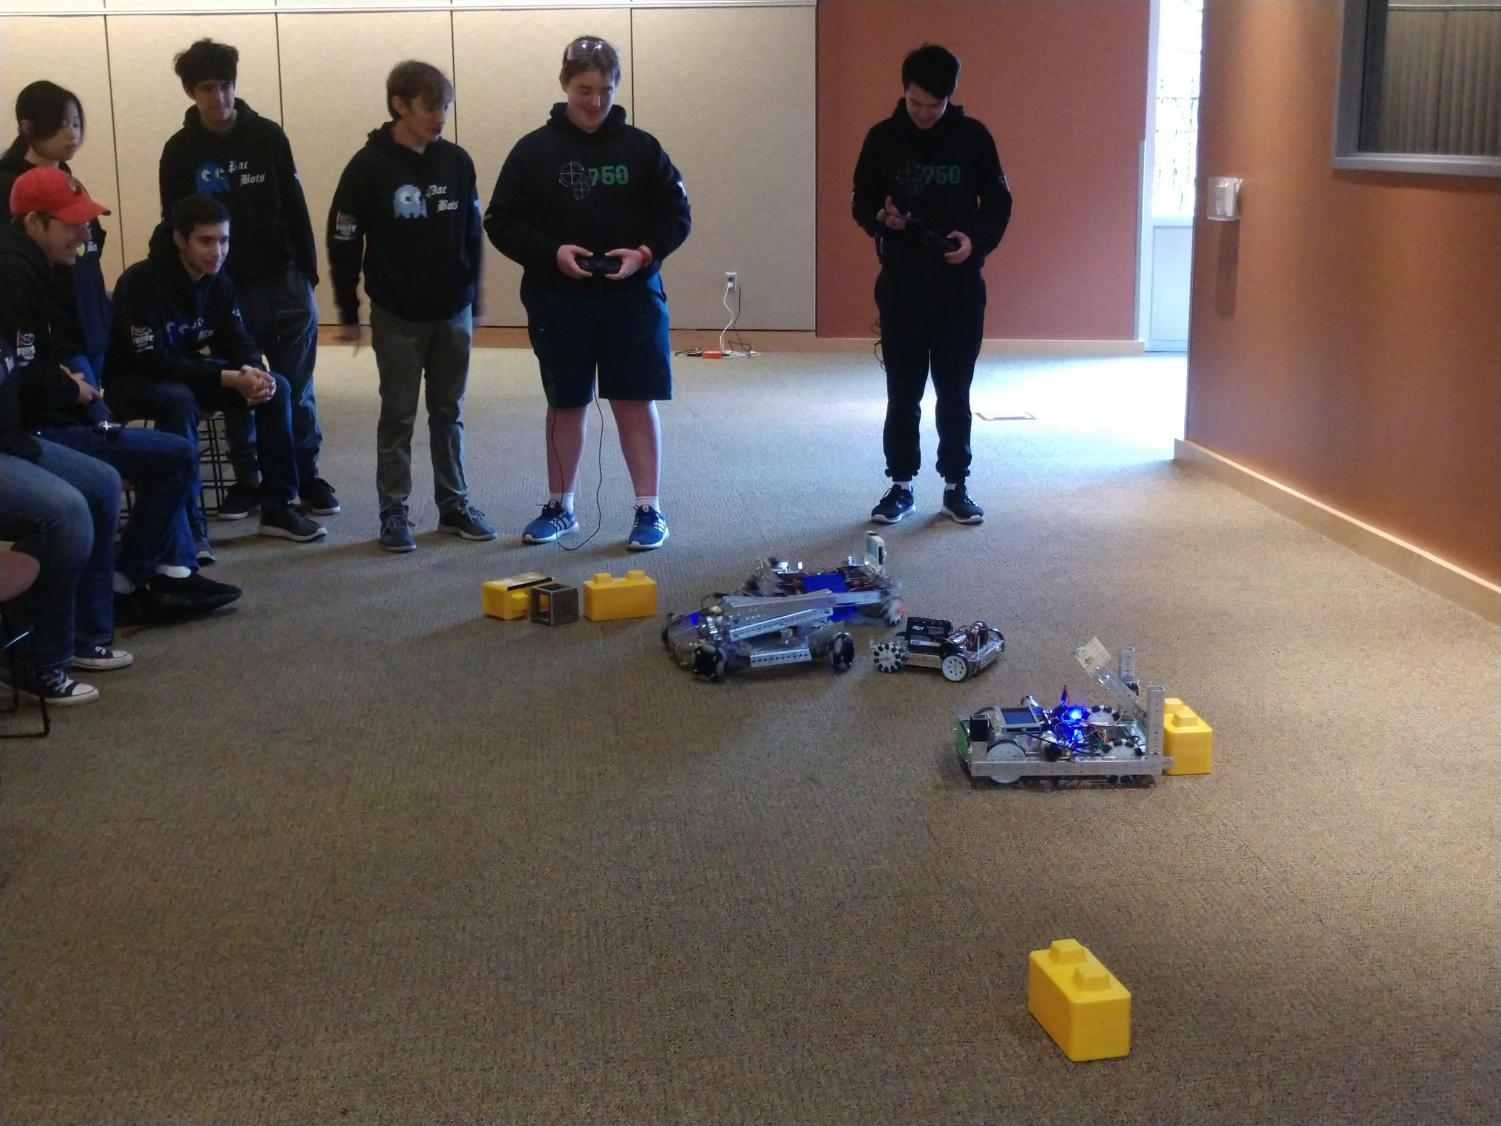 Members from all four FTC teams piloted their robots at the Tigard Library on Sunday. Visitors had the opportunity to pilot the robots for themselves and learn more about Tigard's robotics team.